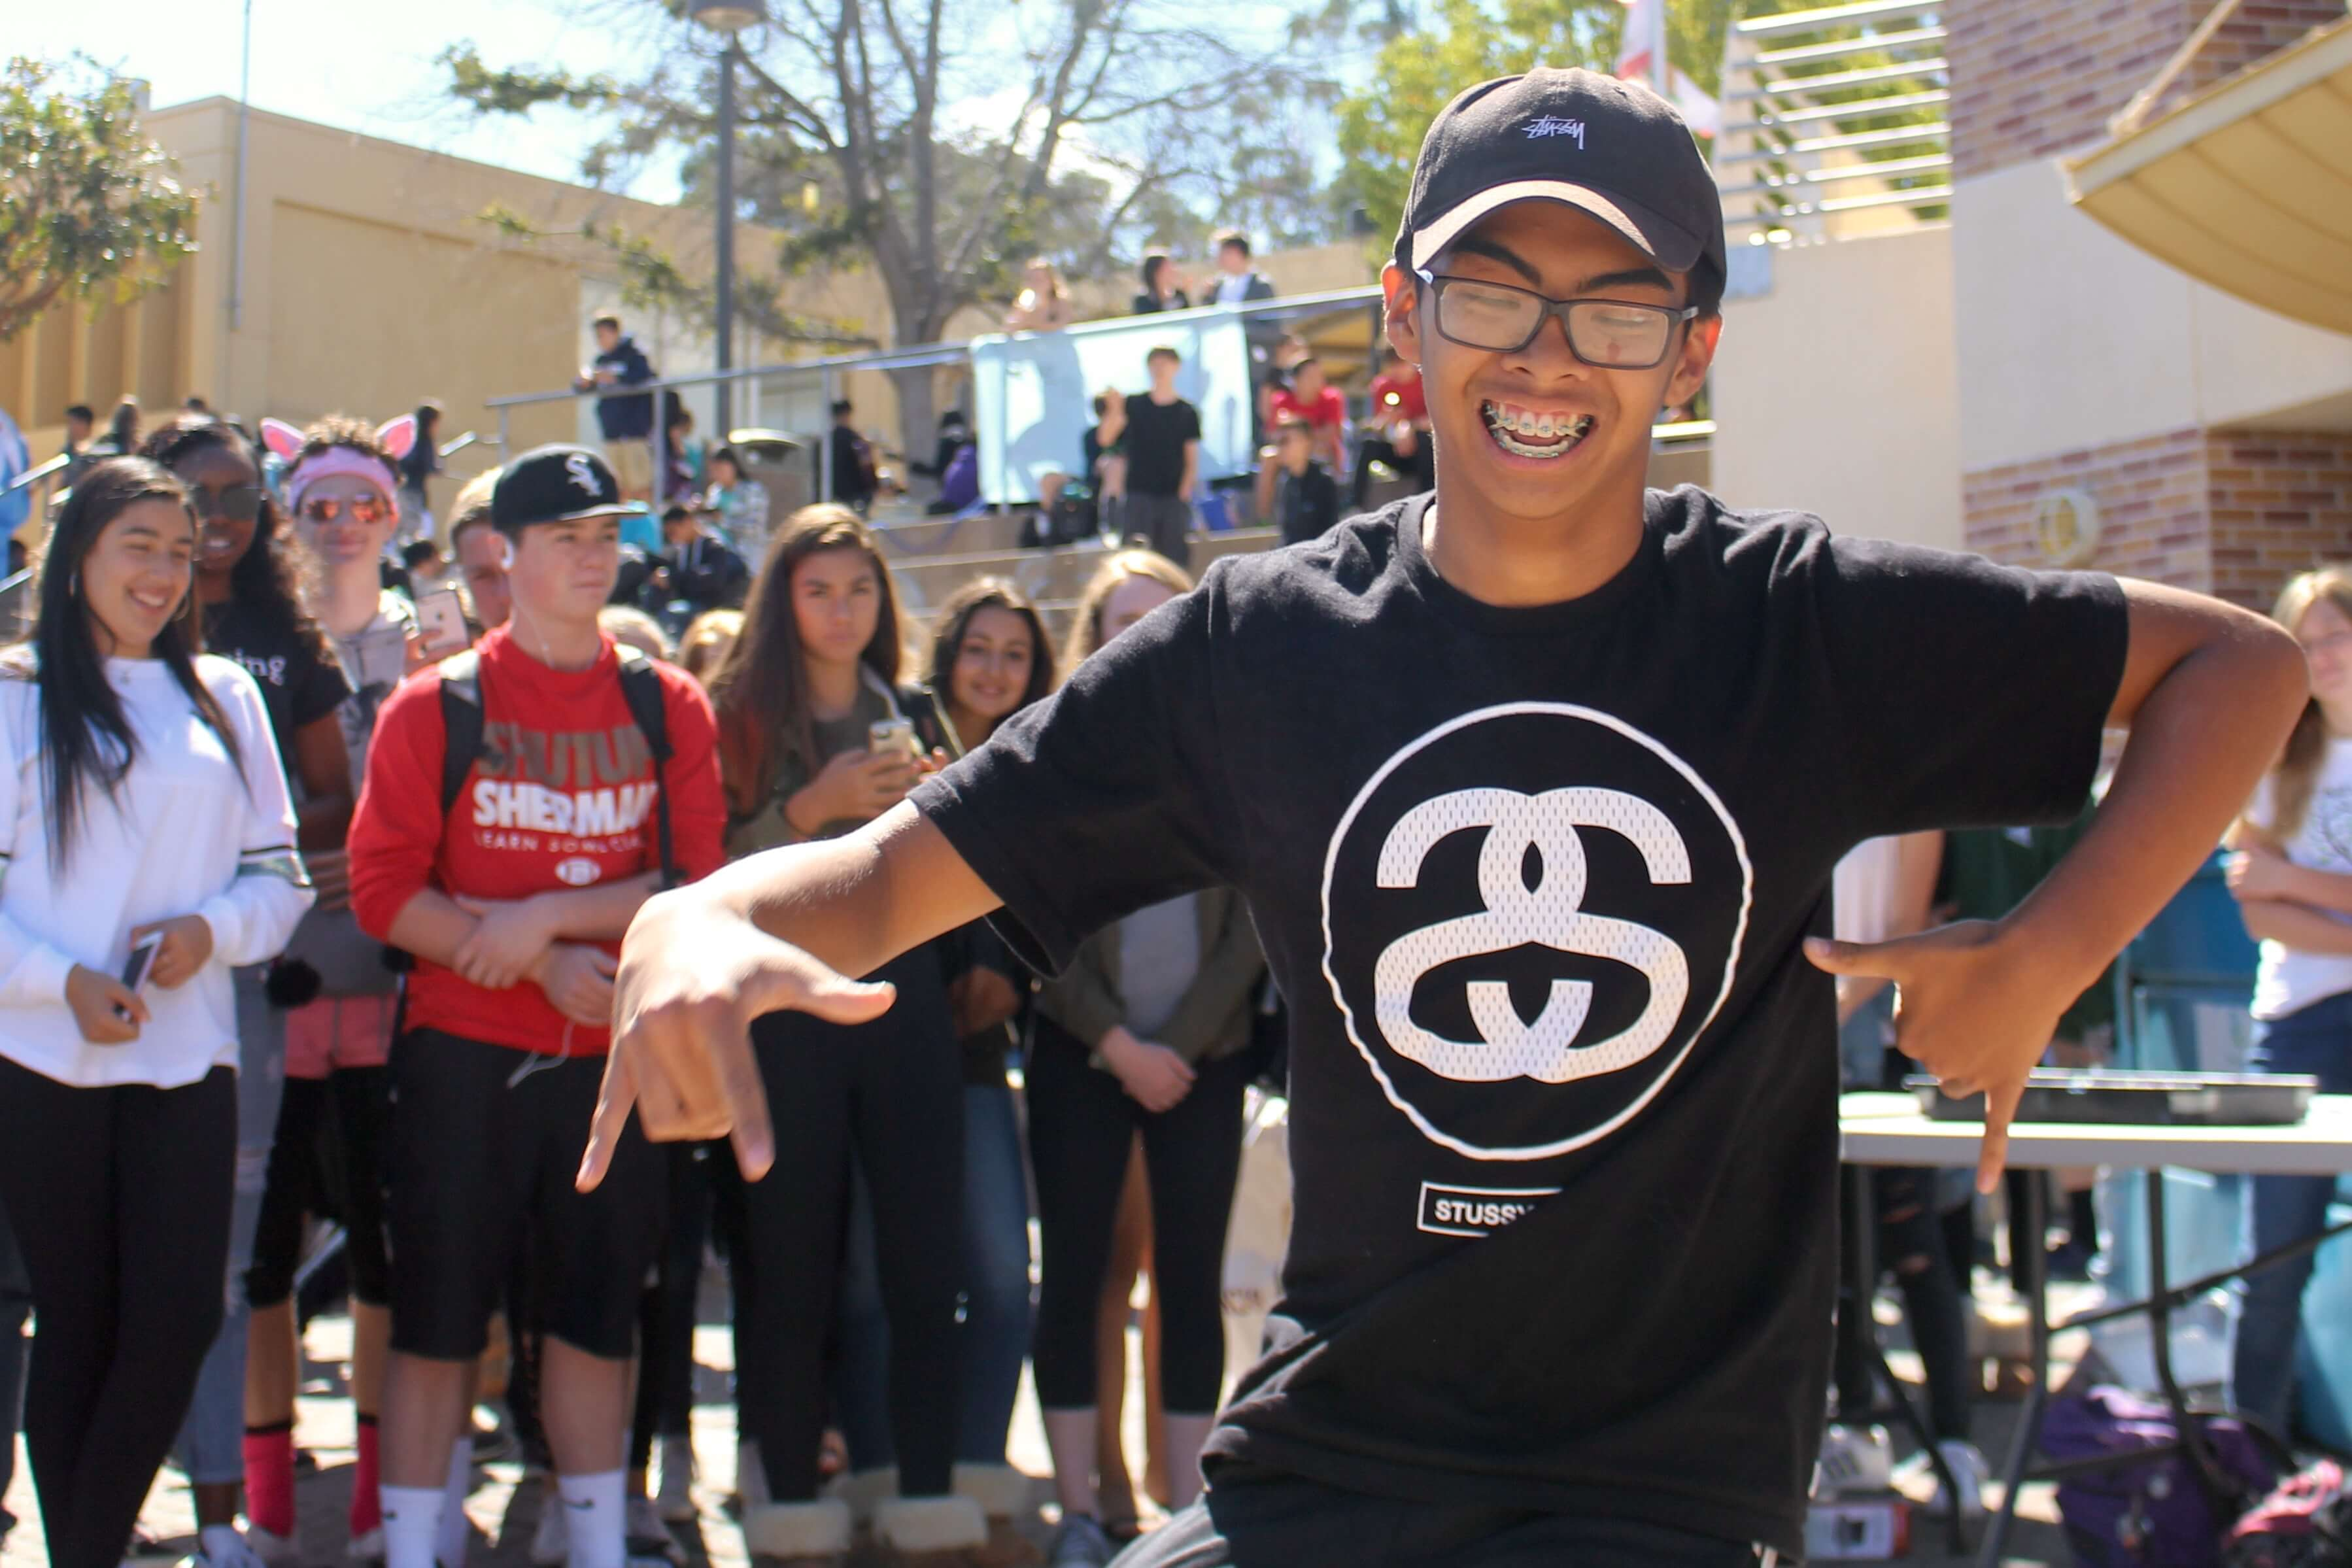 Students gather around the quad while junior Miguel Encarnacion dances to the music.